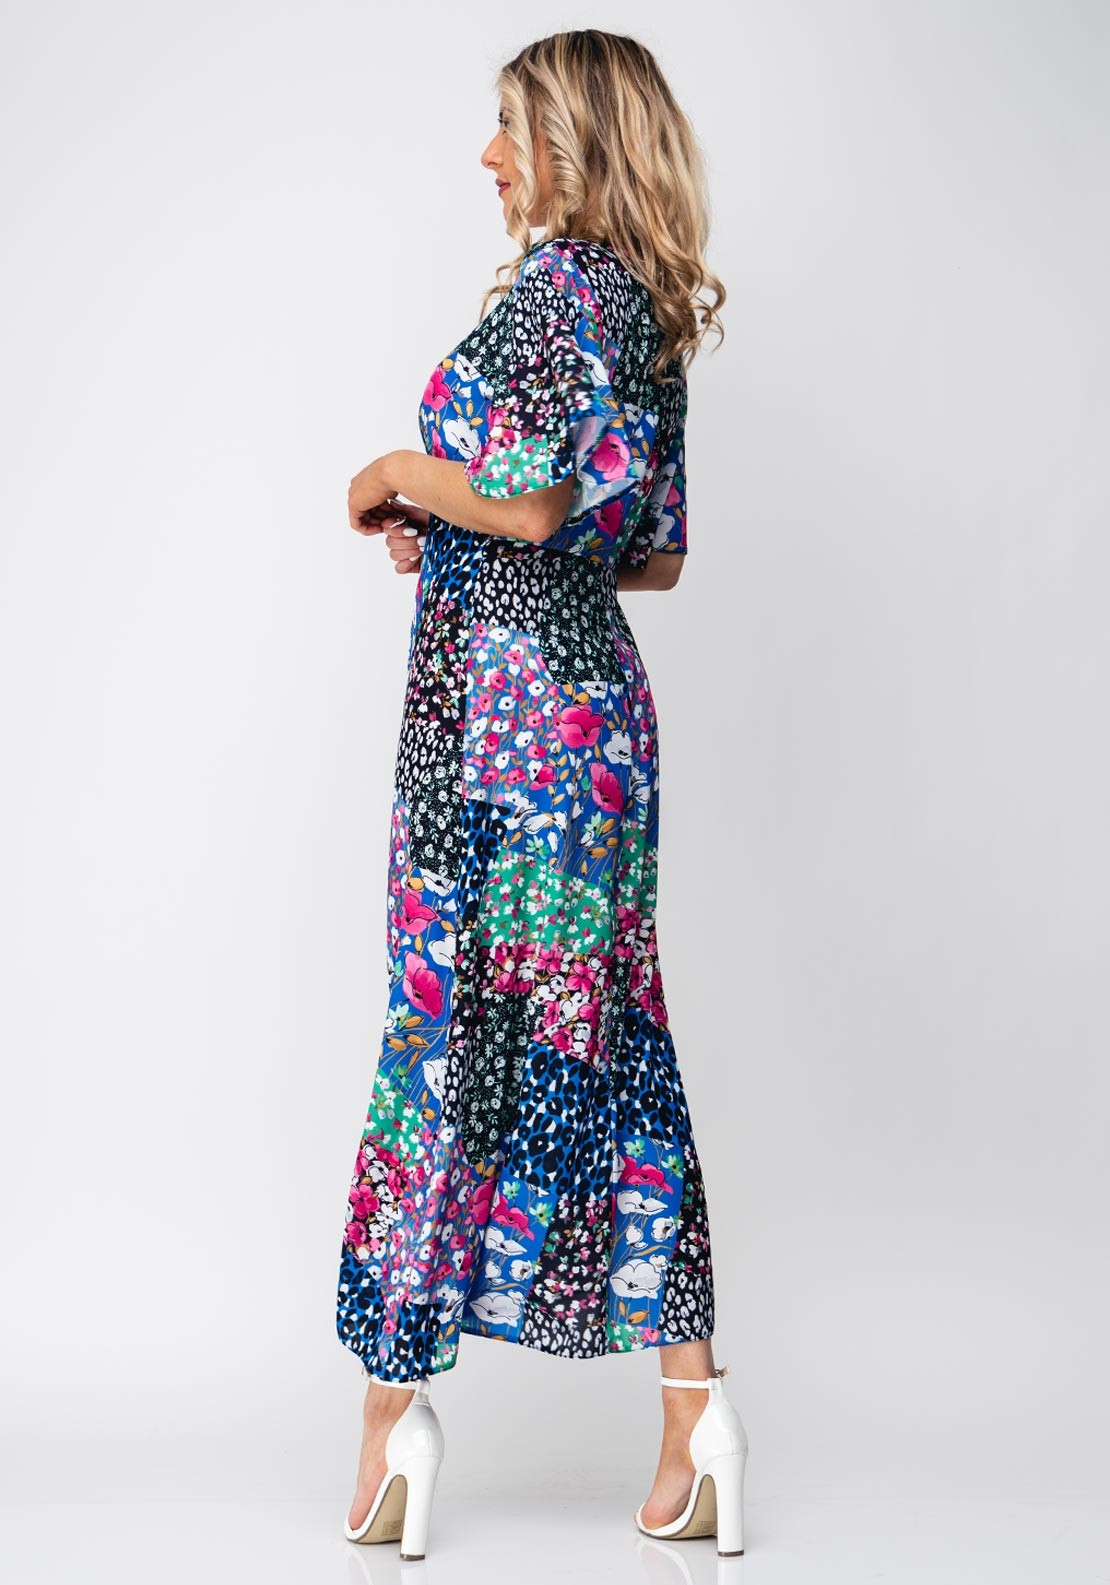 815c7b2c287f Seventy1 Patchwork Flower Long Dress, Blue Multi. Be the first to review  this product